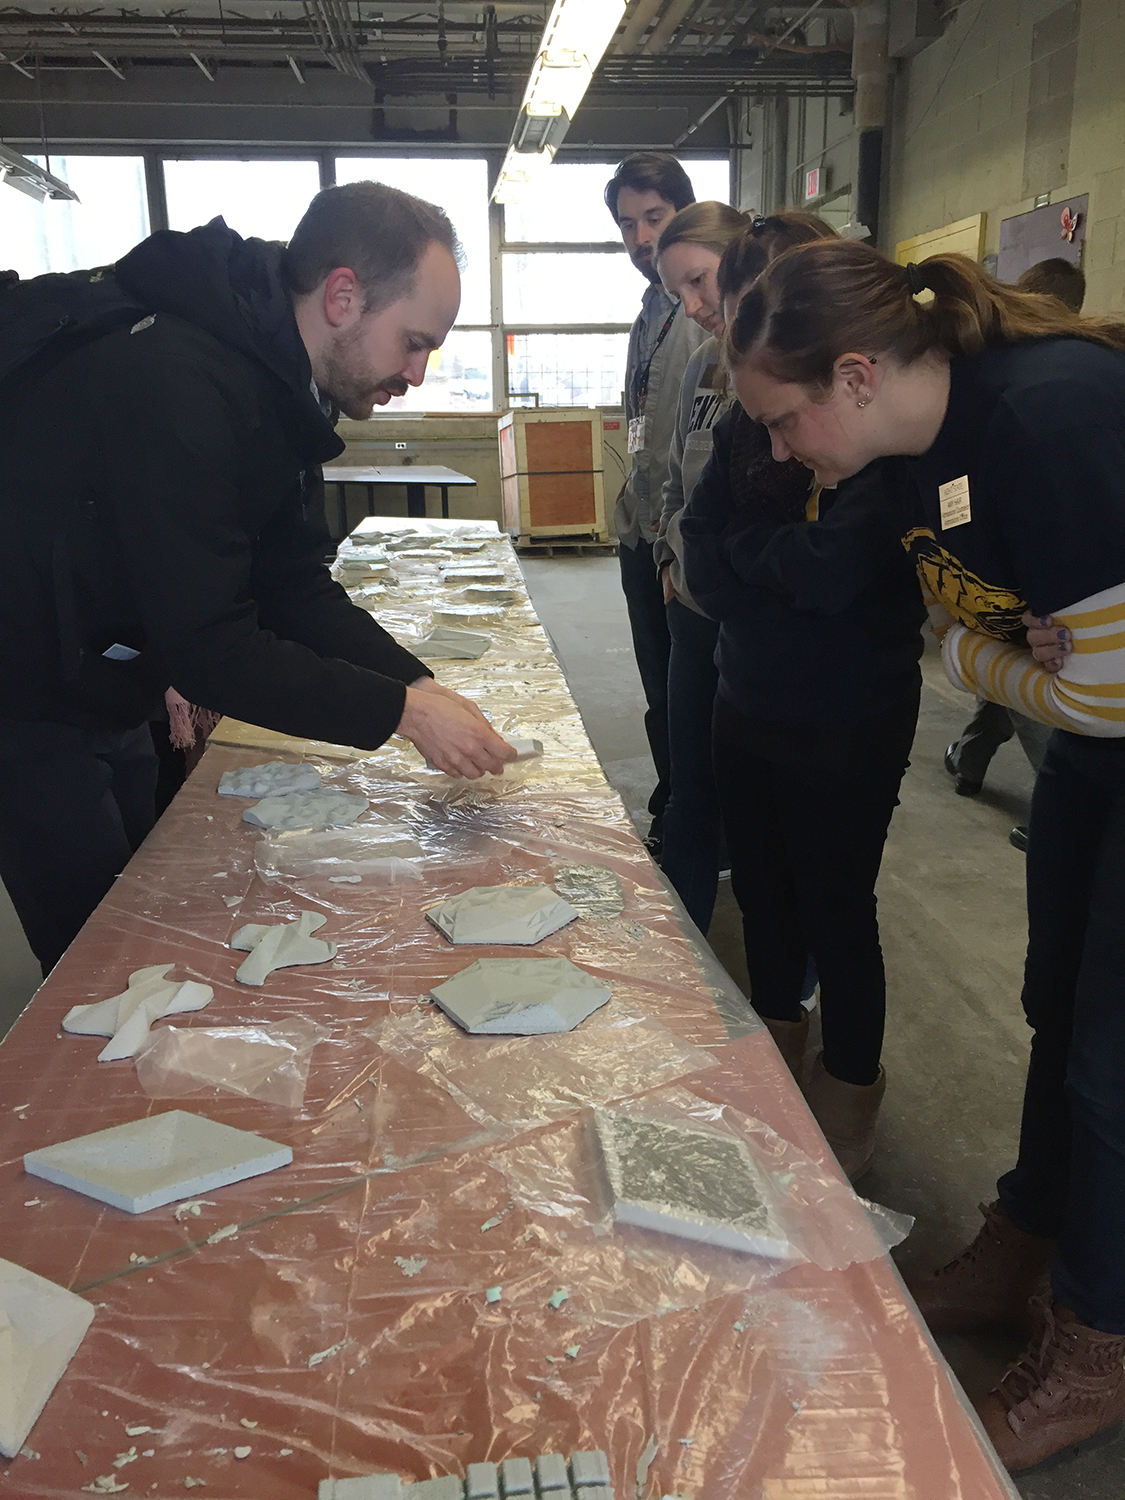 A demonstration of the Casting Concrete Panels project in Spark's project studio space